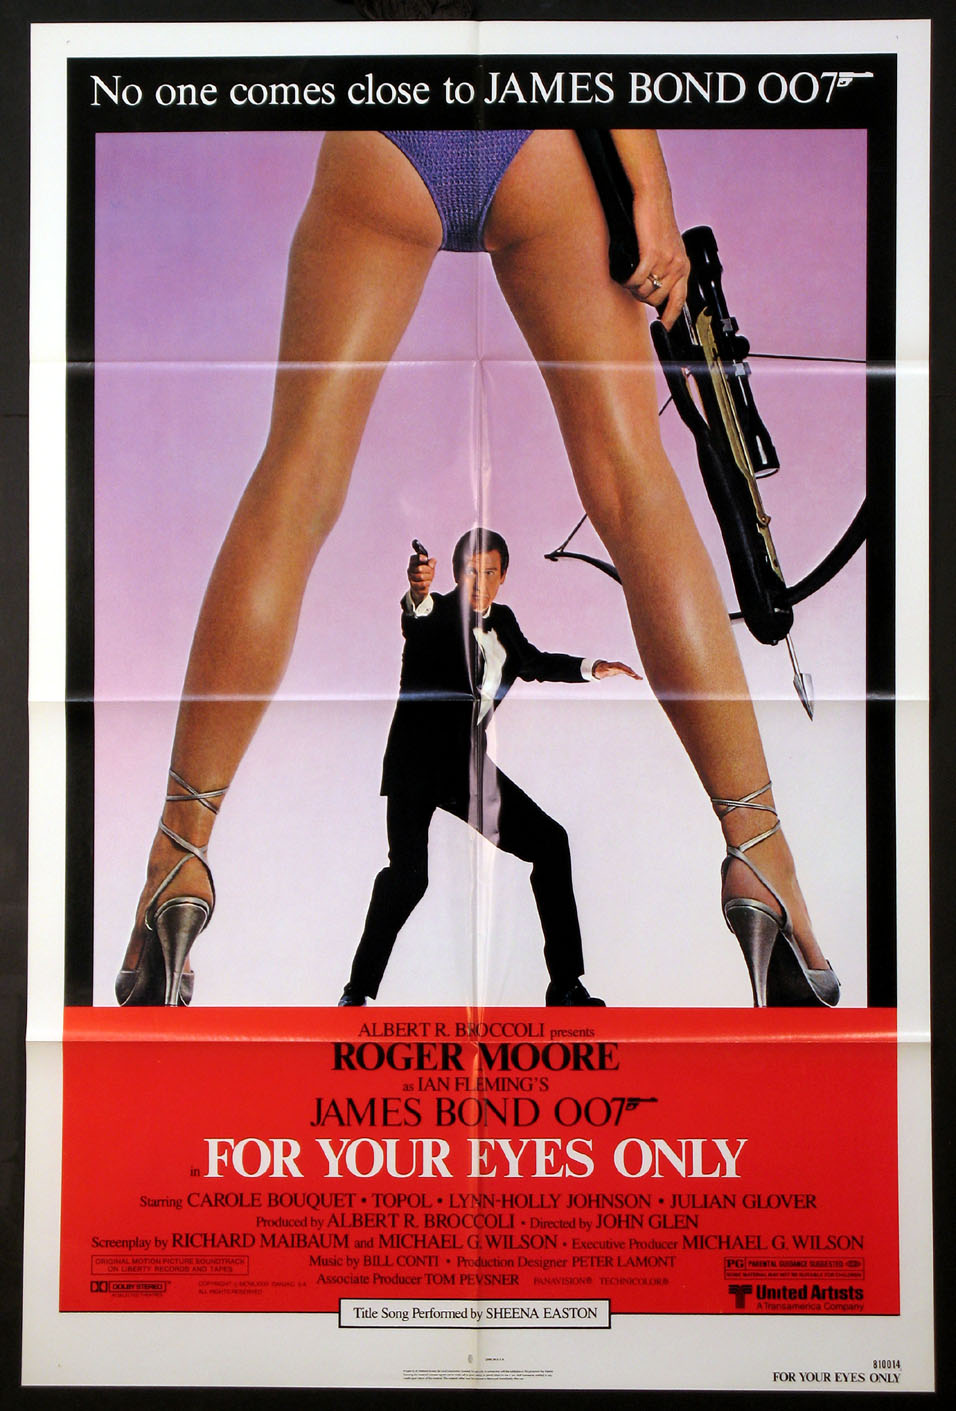 FOR YOUR EYES ONLY (James Bond) @ FilmPosters.com